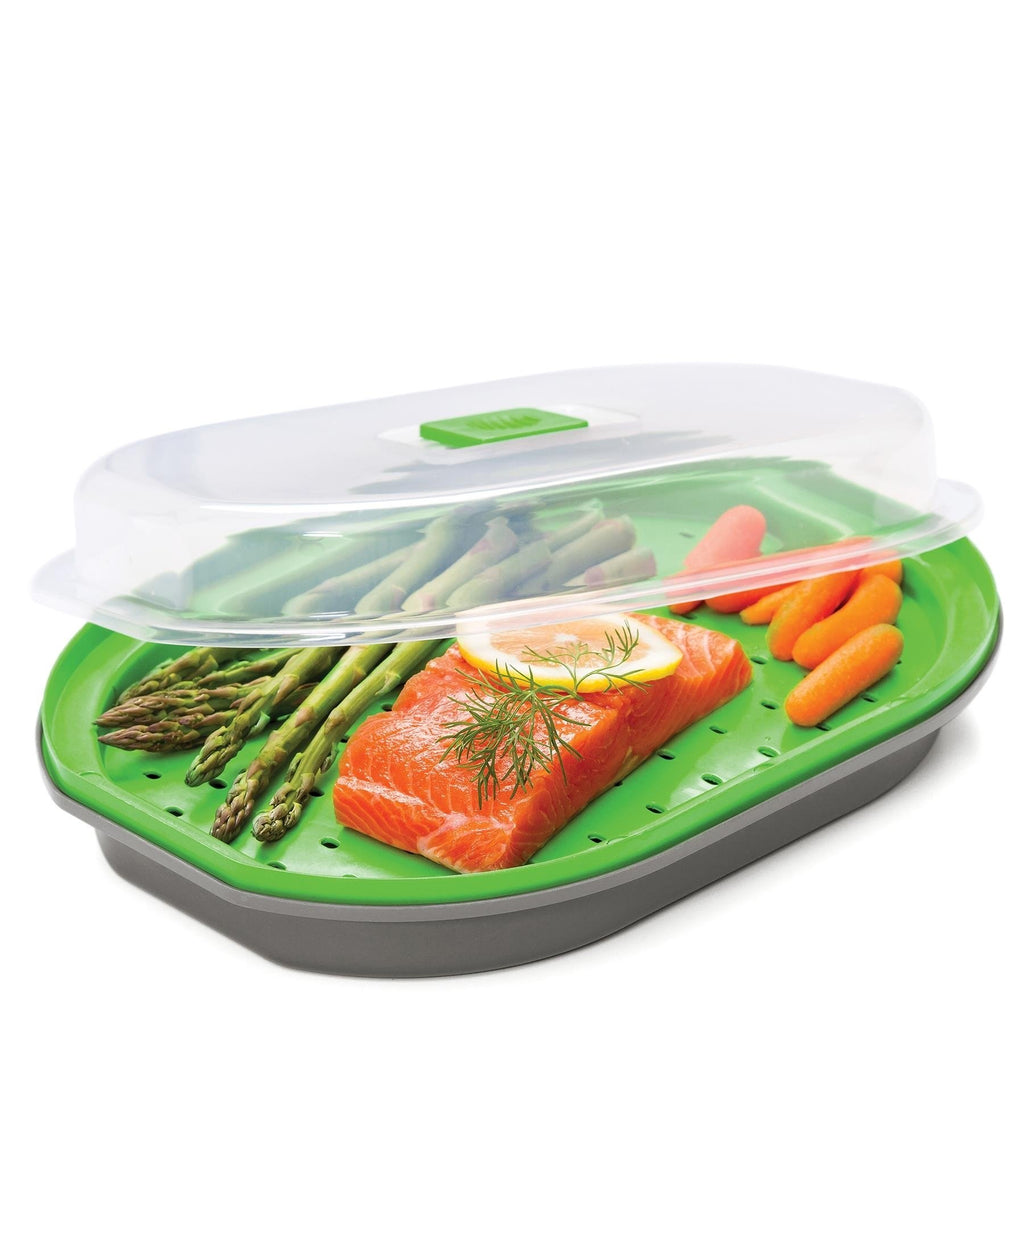 Progressive Fish And Vegetable Steamer - Grey